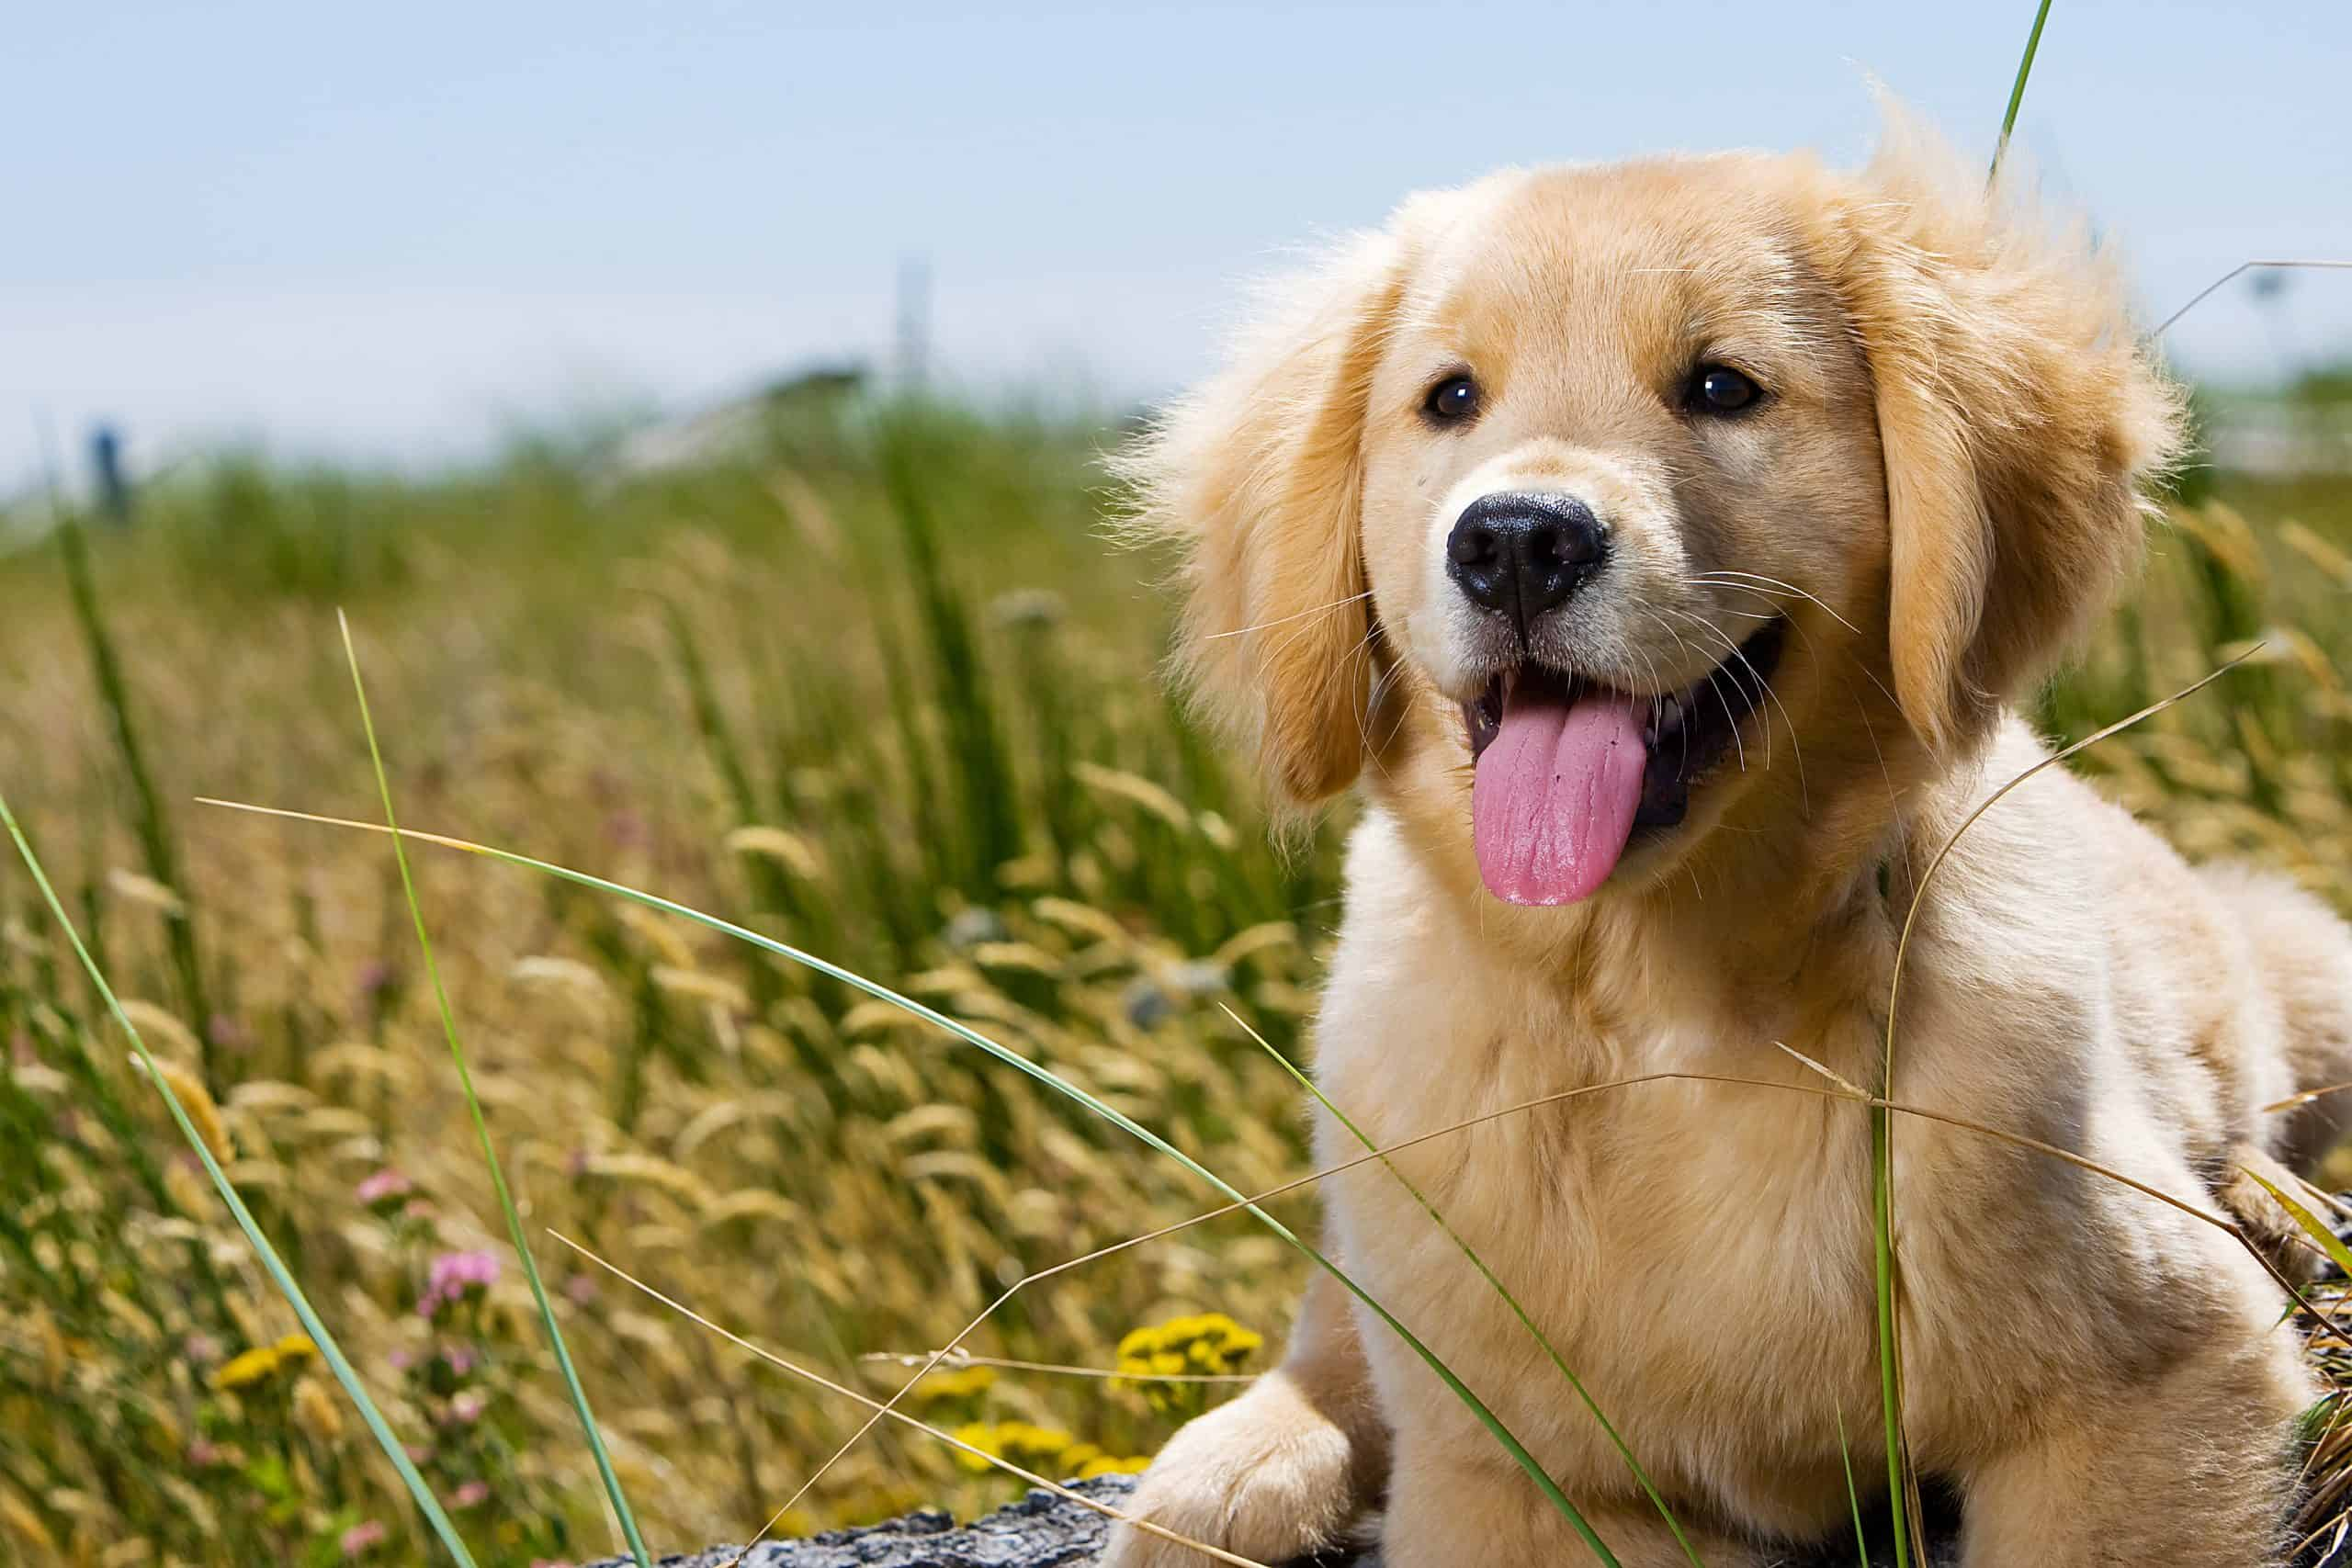 Golden Retriever Puppy with tongue hanging out.; how do you pick your name for your puppy?